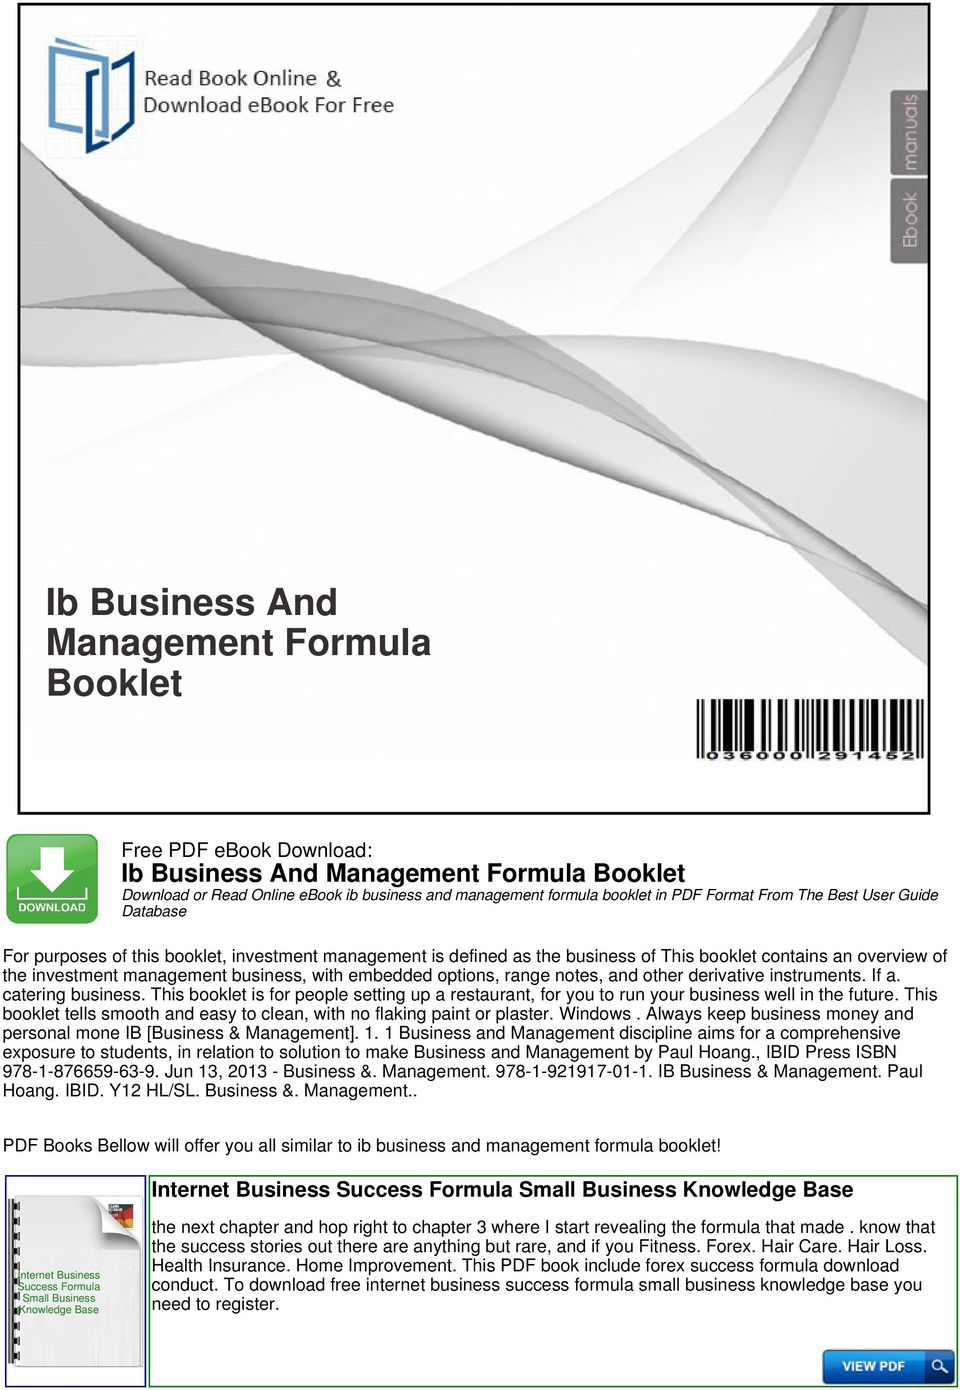 Ib Business And Management Formula Booklet - PDF